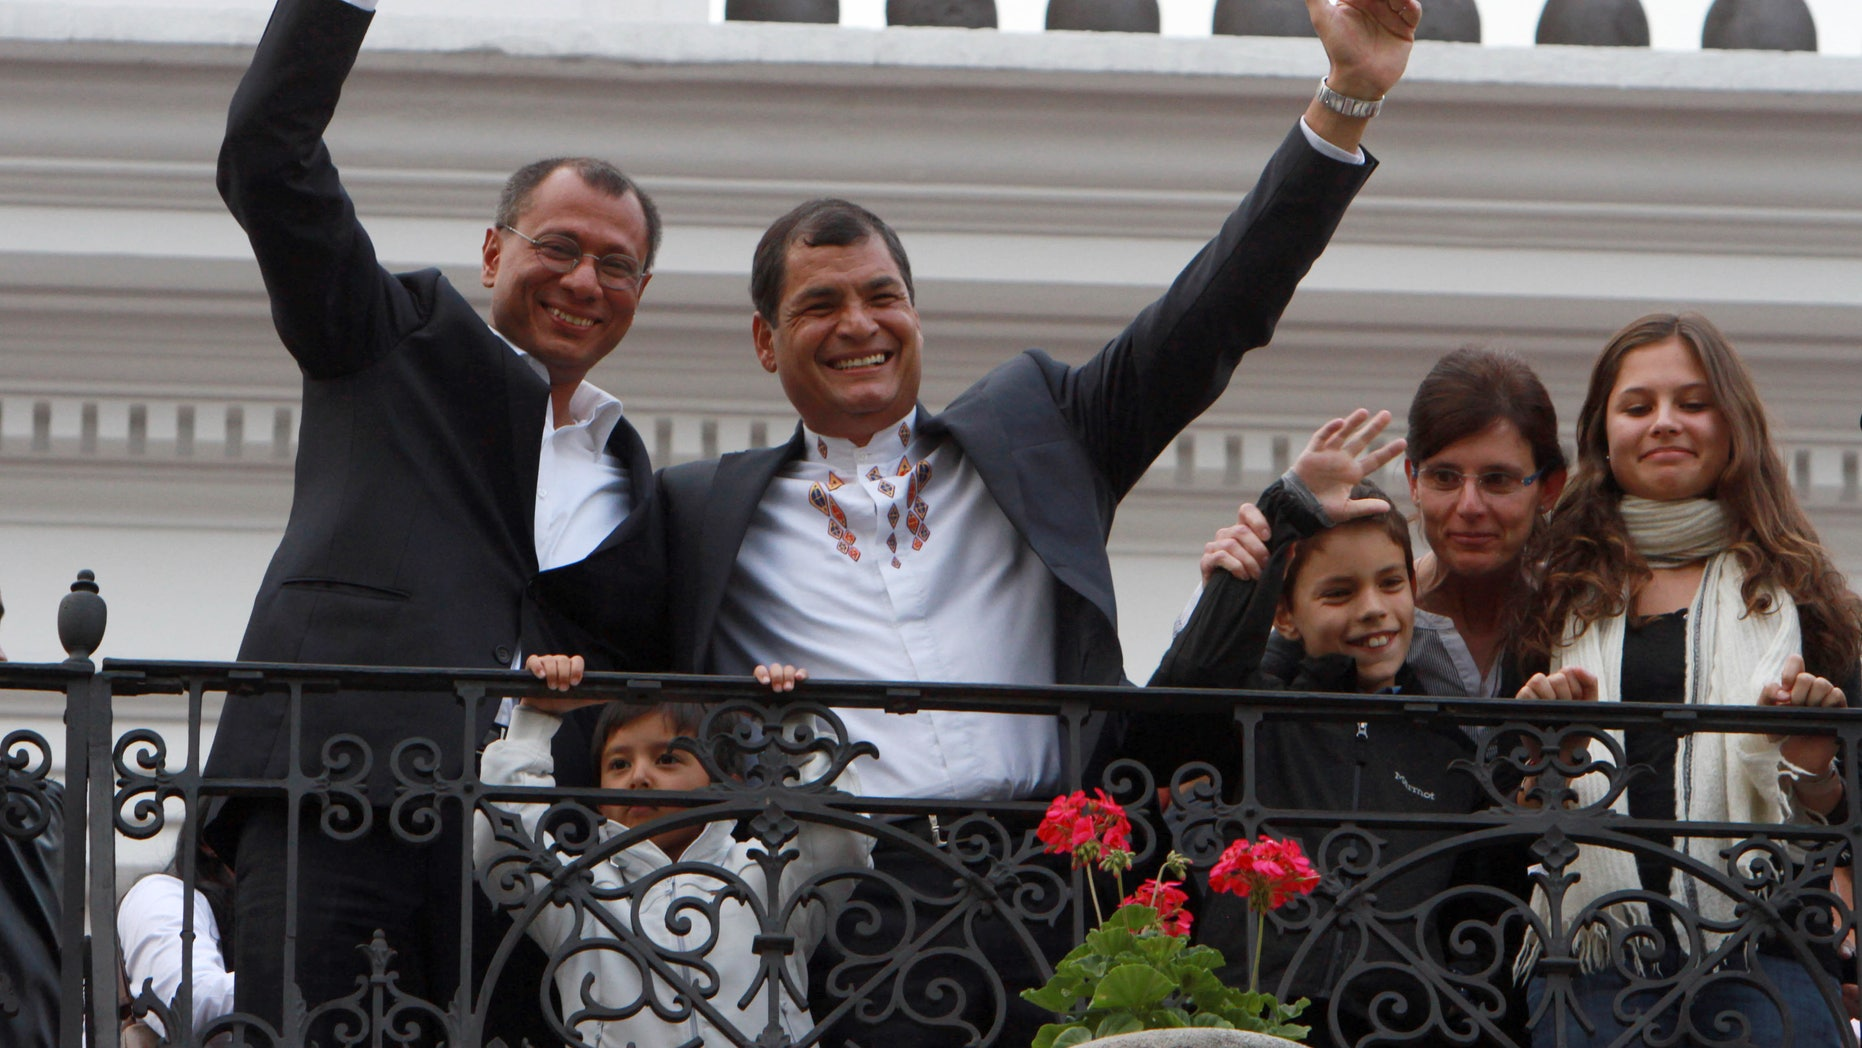 Feb. 17, 2013: Ecuador's President and candidate for re-election Rafael Correa, top right, and vice presidential candidate Jorge Glass, top left, accompanied by relatives, celebrate after presidential elections in Quito, Ecuador.